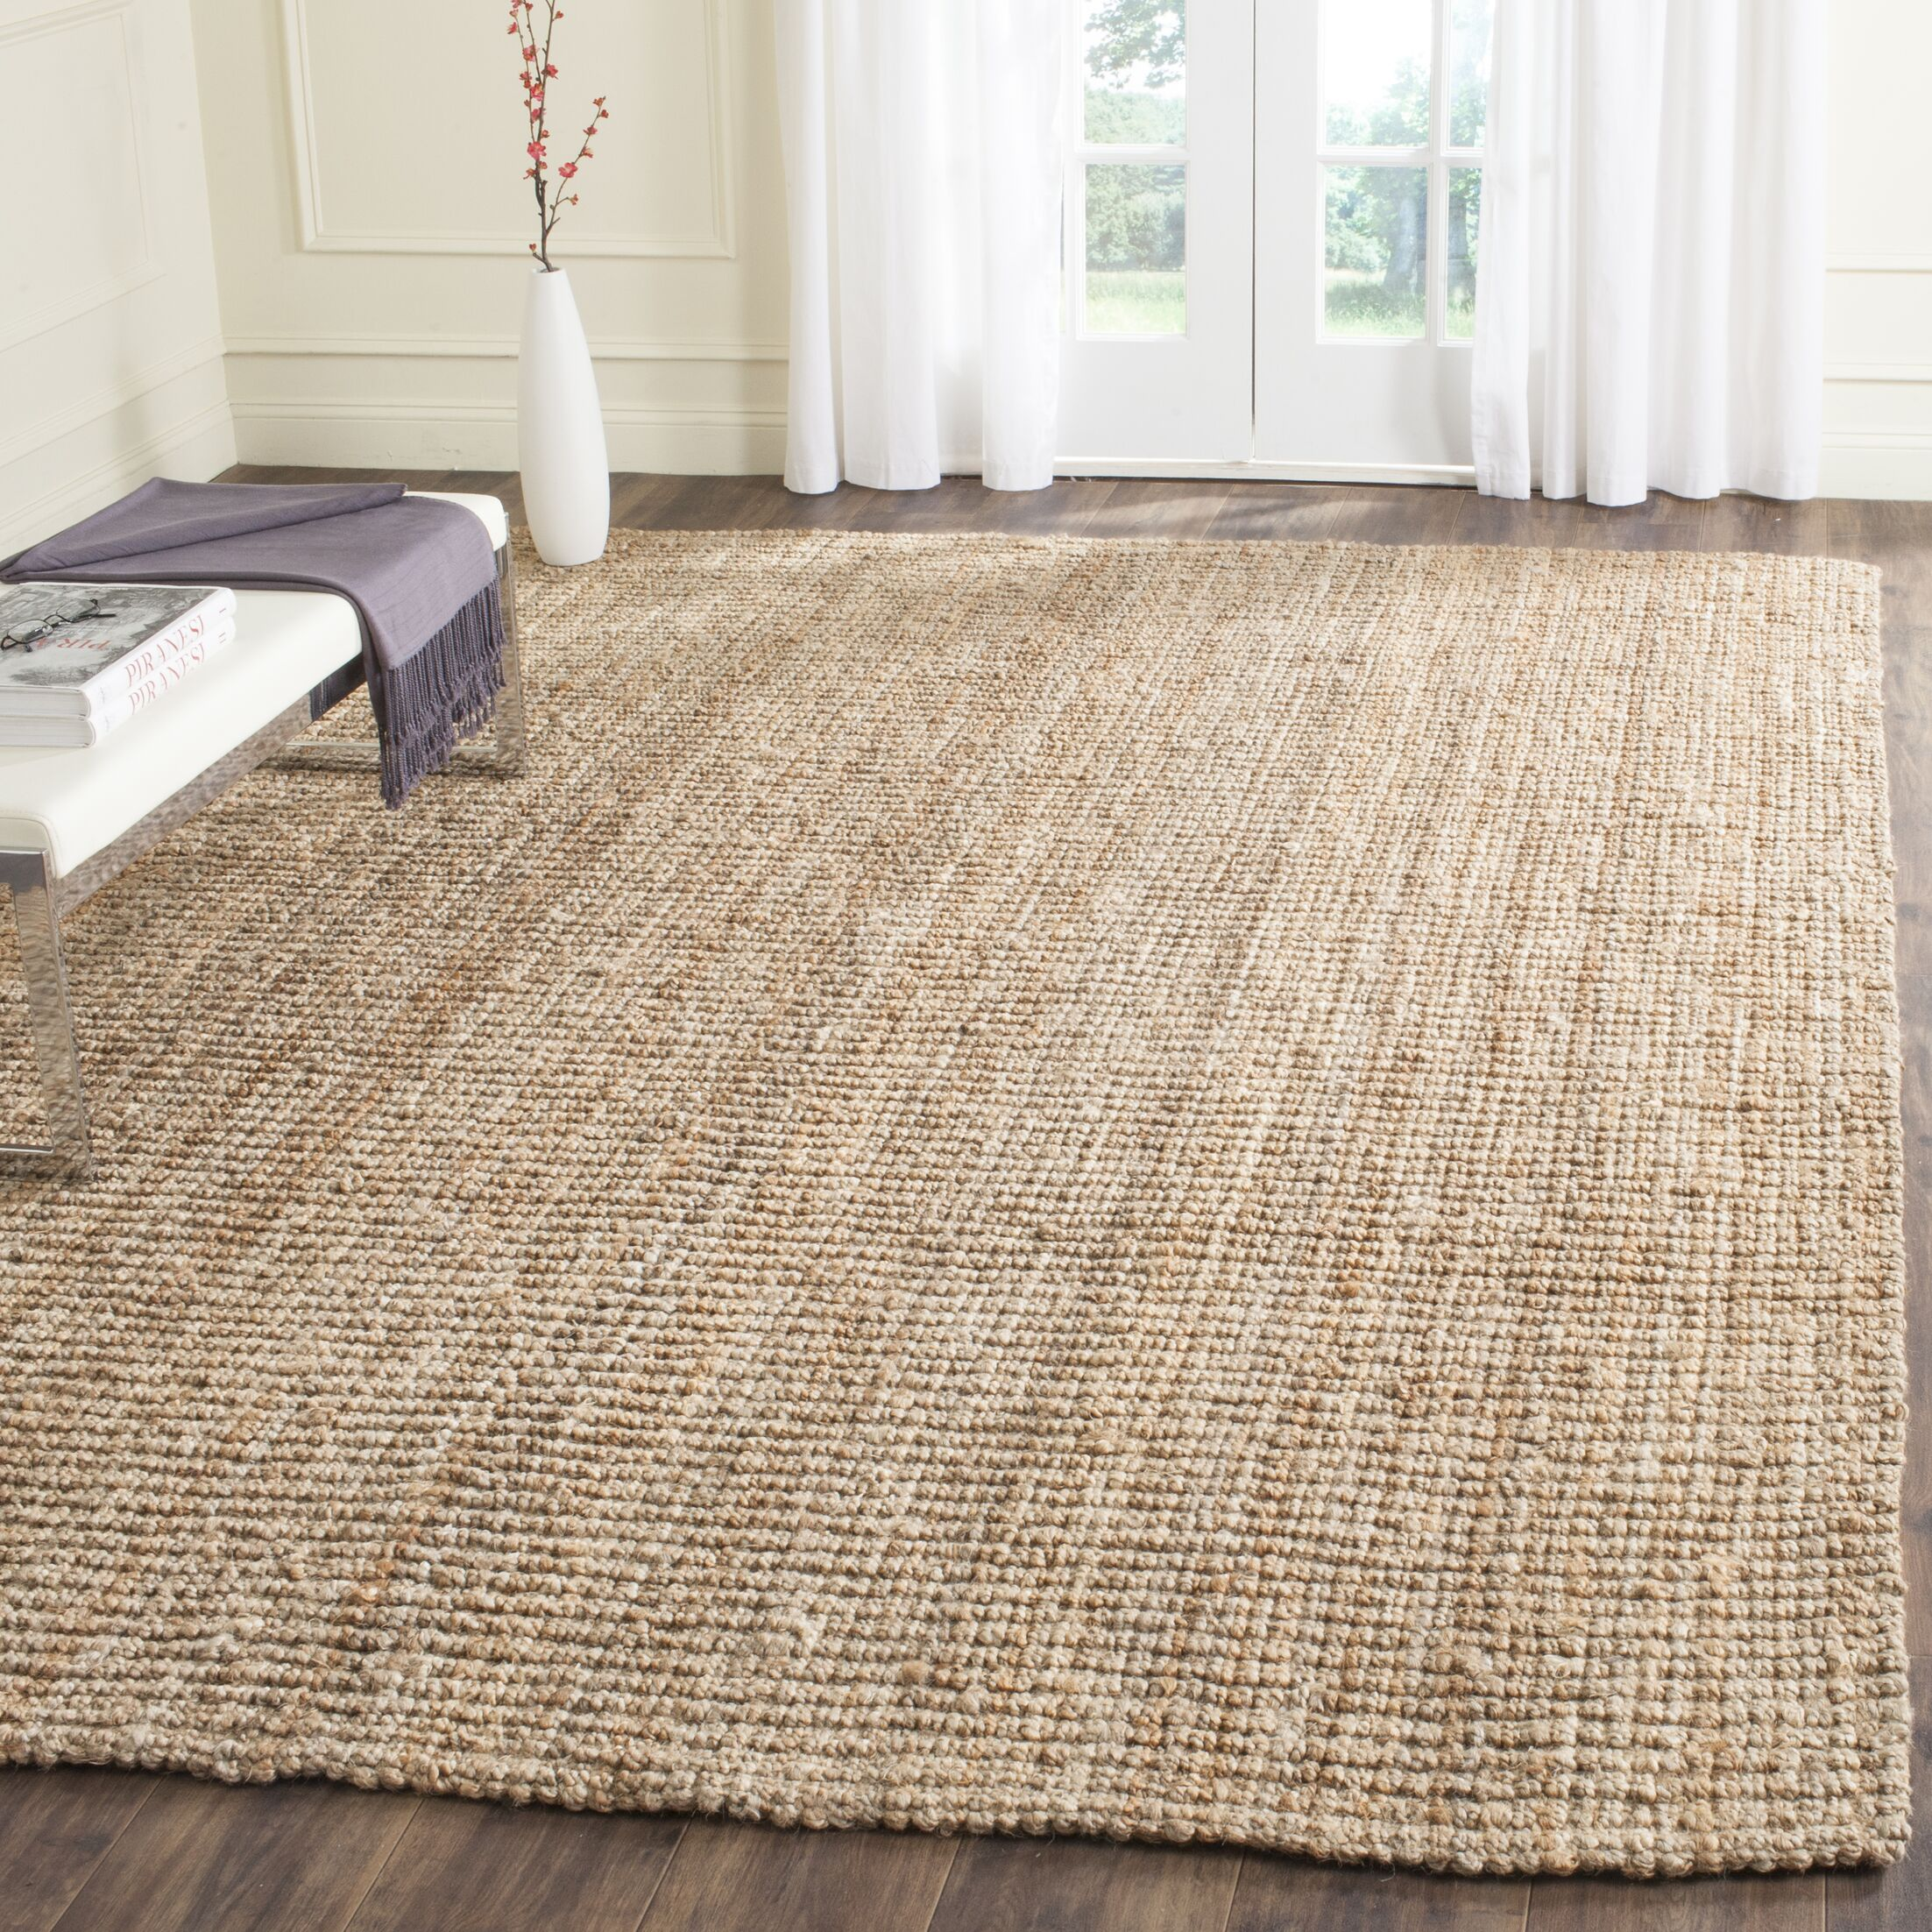 Gaines Power Loom Natural Area Rug Rug Size: Rectangle 9' x 12'